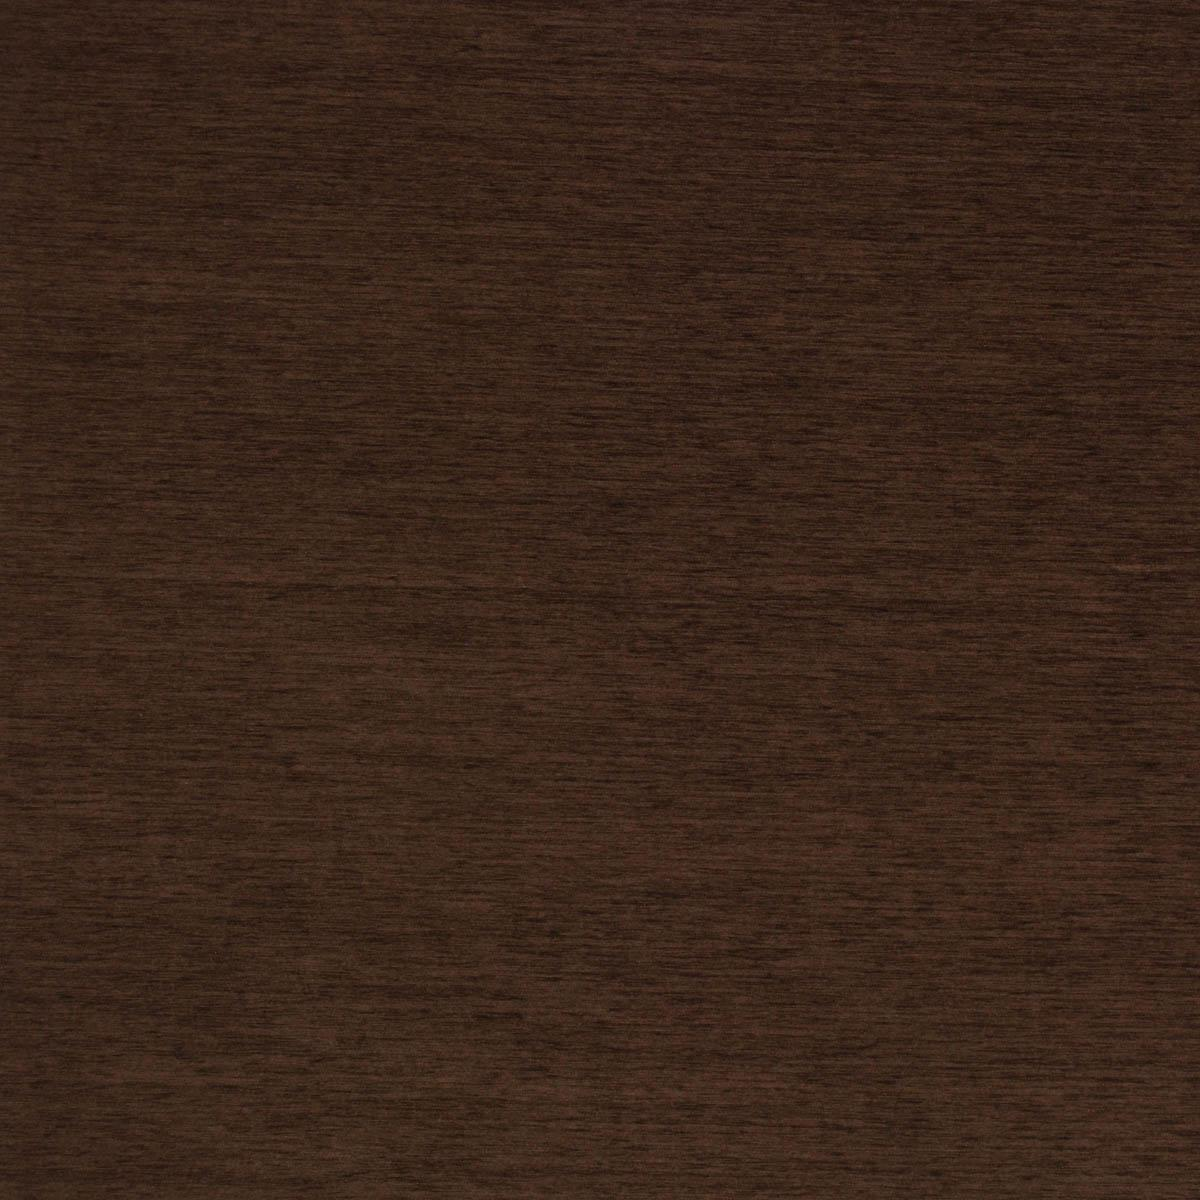 Stockists of Chocolate Opulence Curtain Fabric